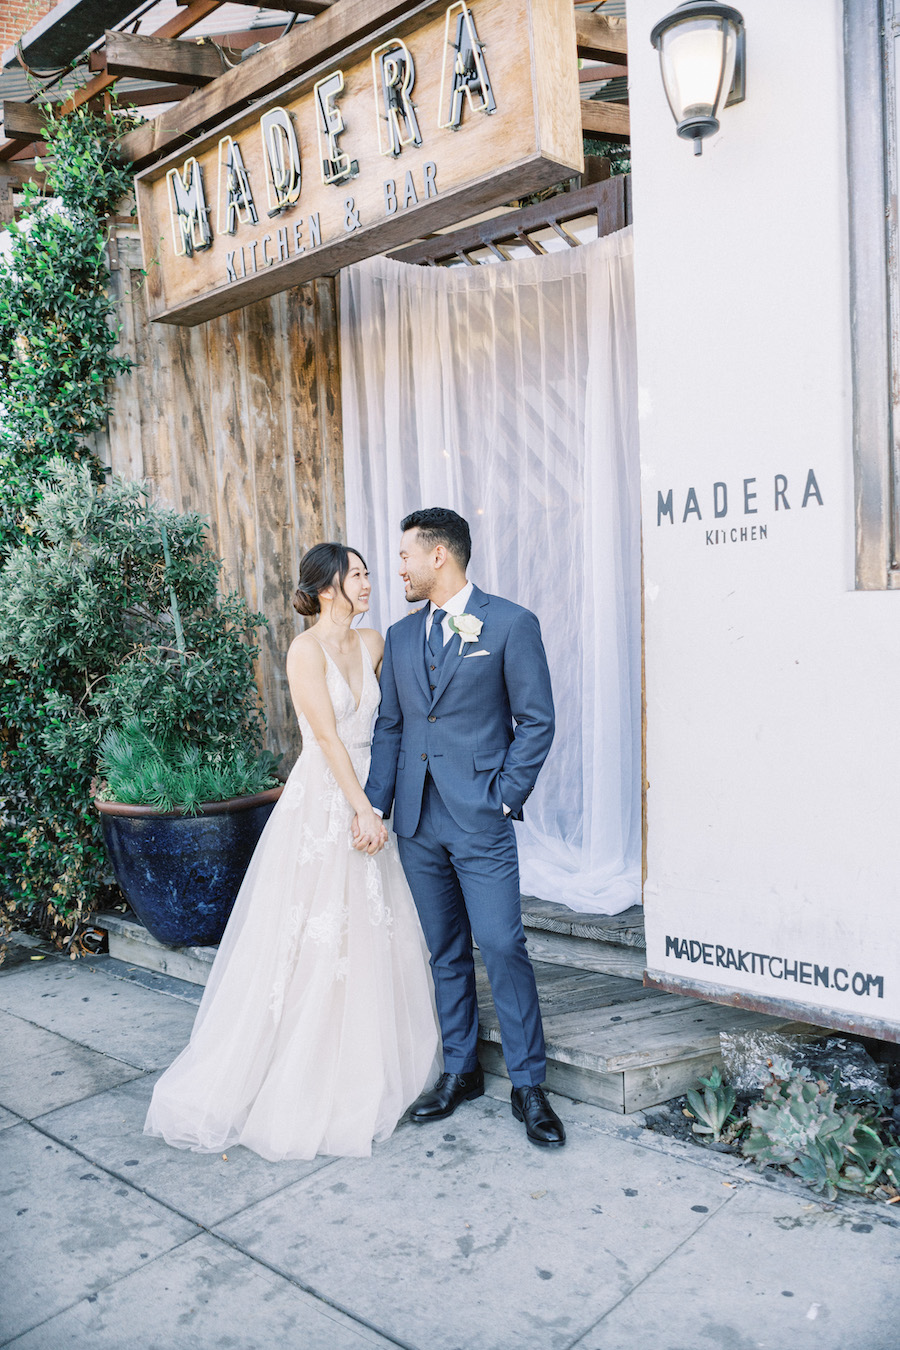 newlyweds in front of madera kitchen la restaurant